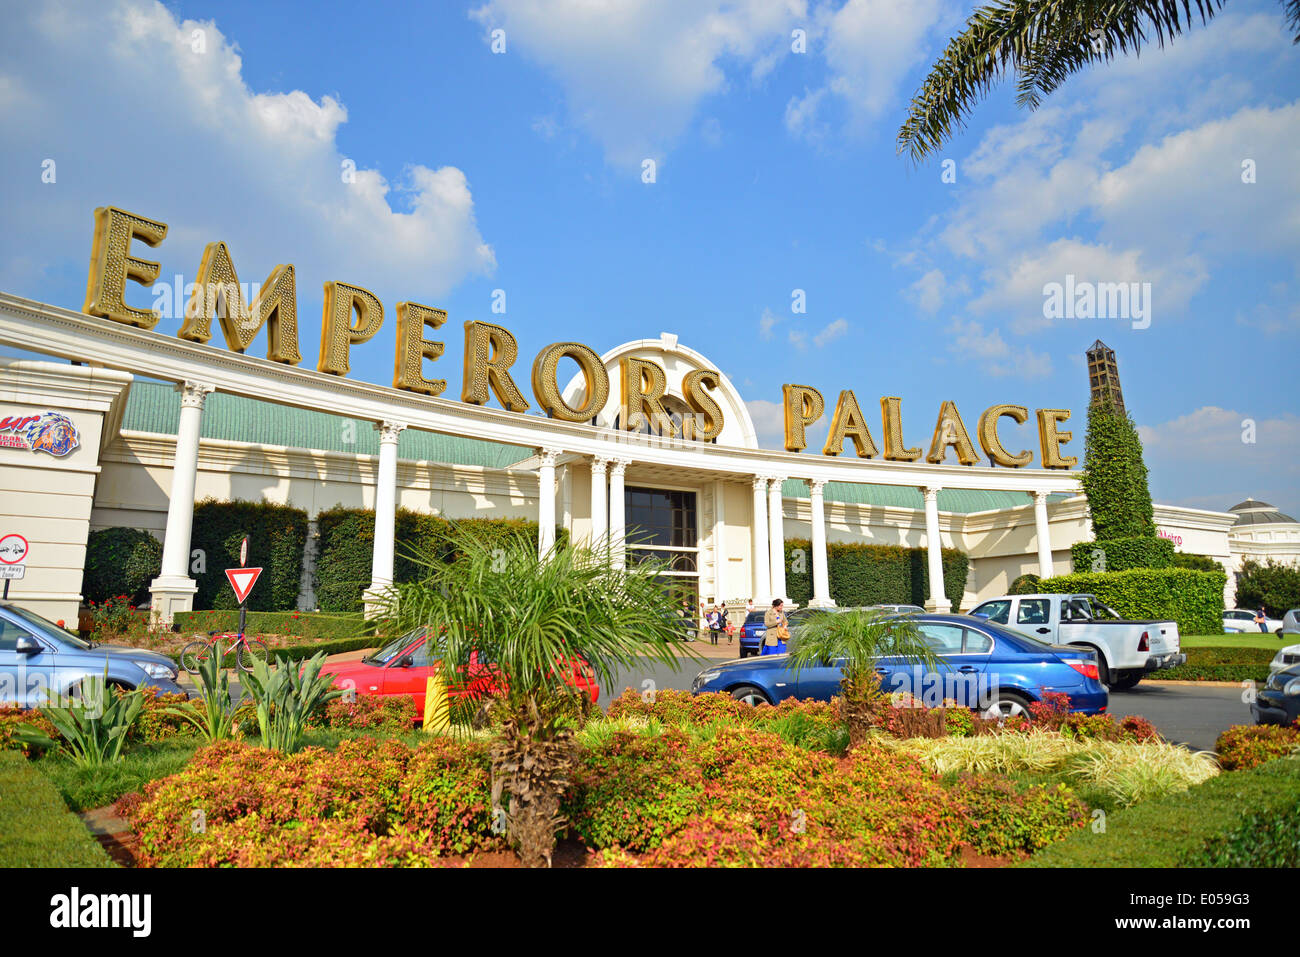 Hotel In Kempton Park South Africa